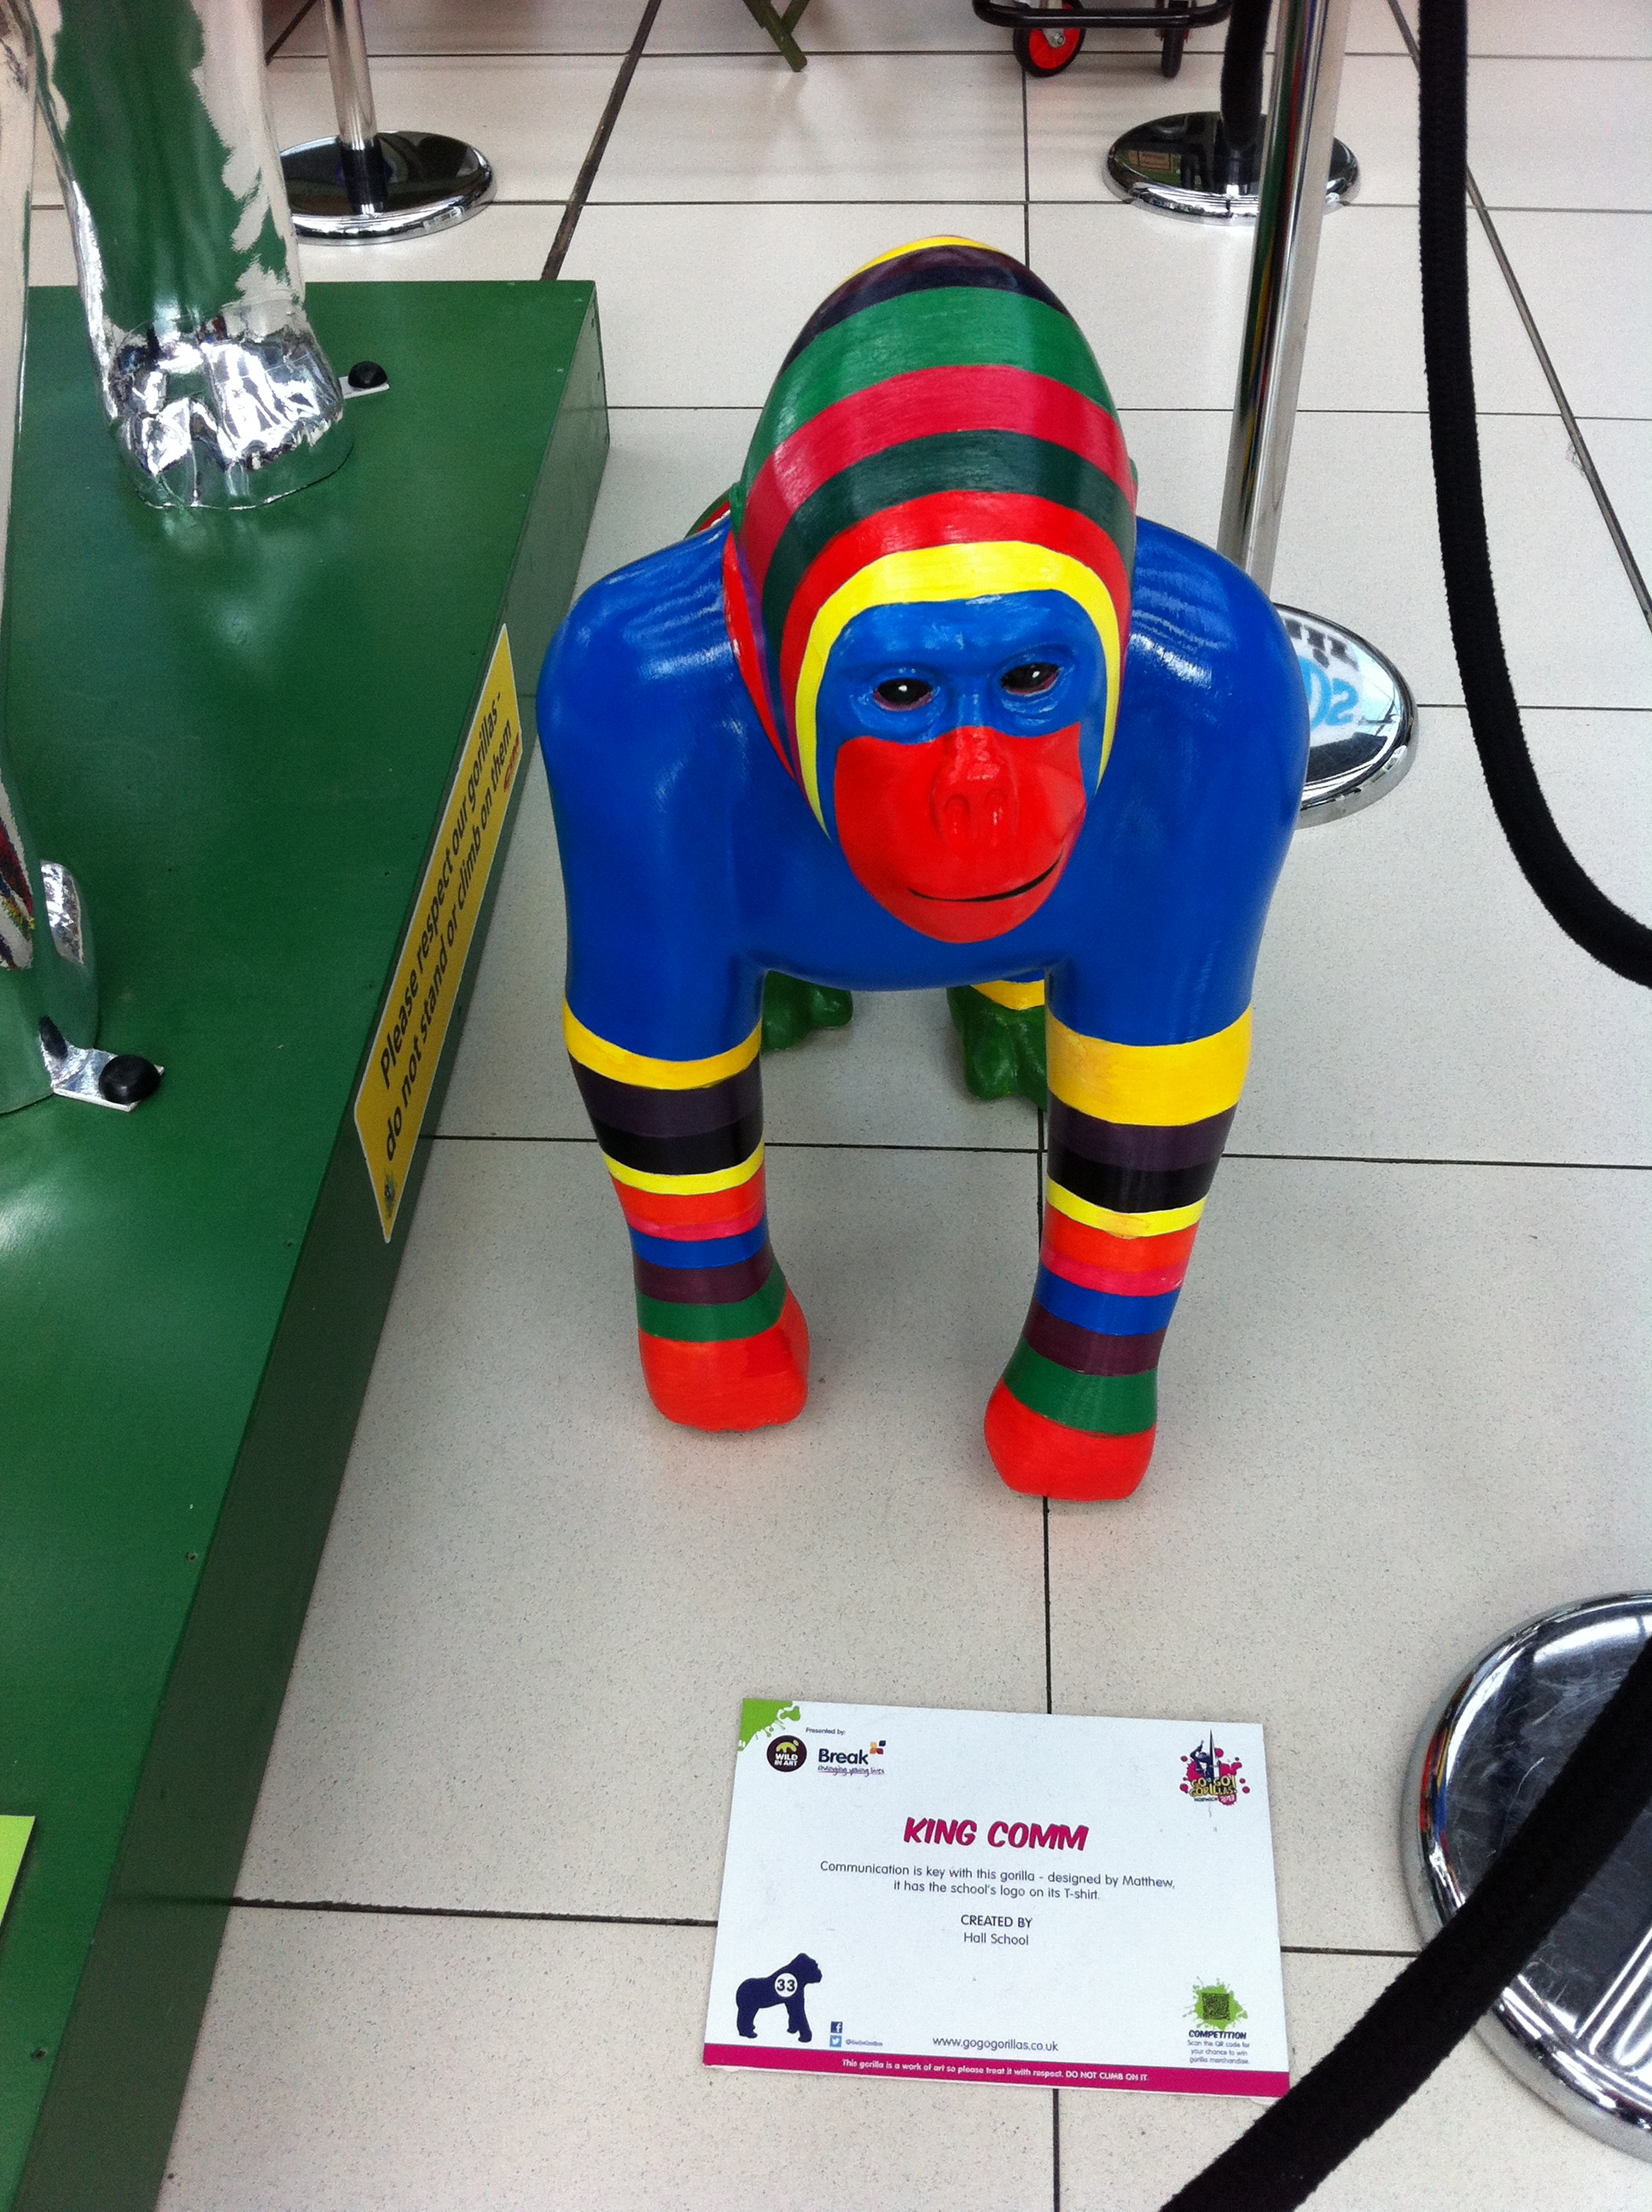 Go Go Gorillas King Comm - Norwich